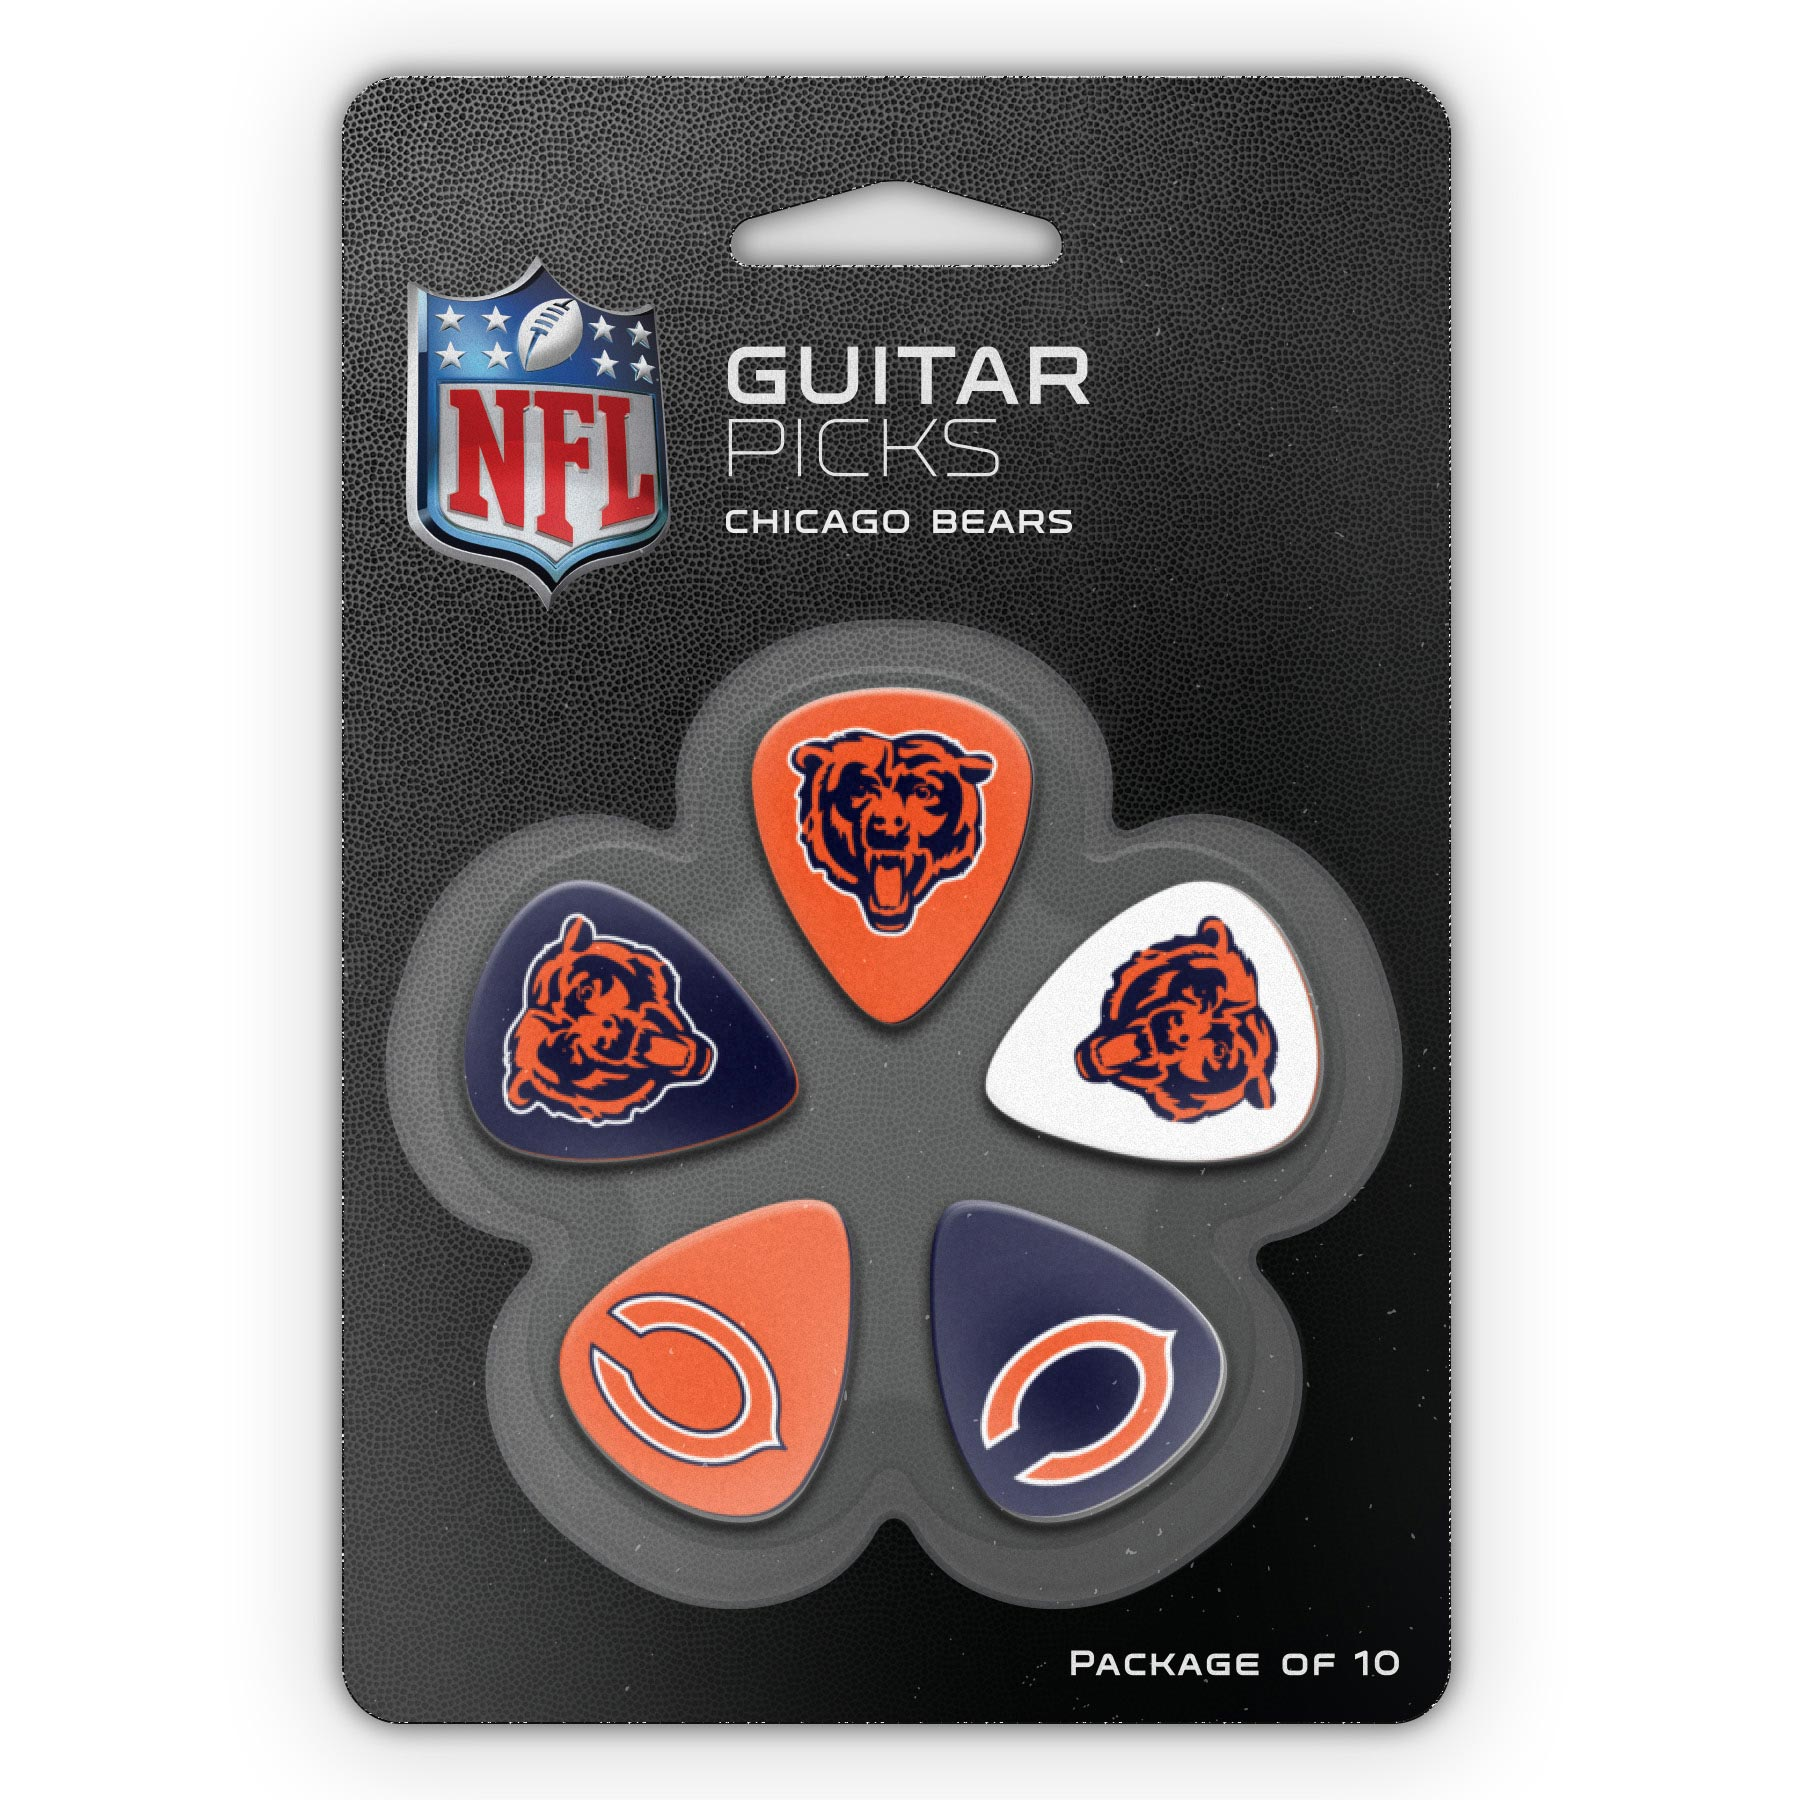 Chicago Bears Woodrow Guitar 10-Pack Guitar Picks